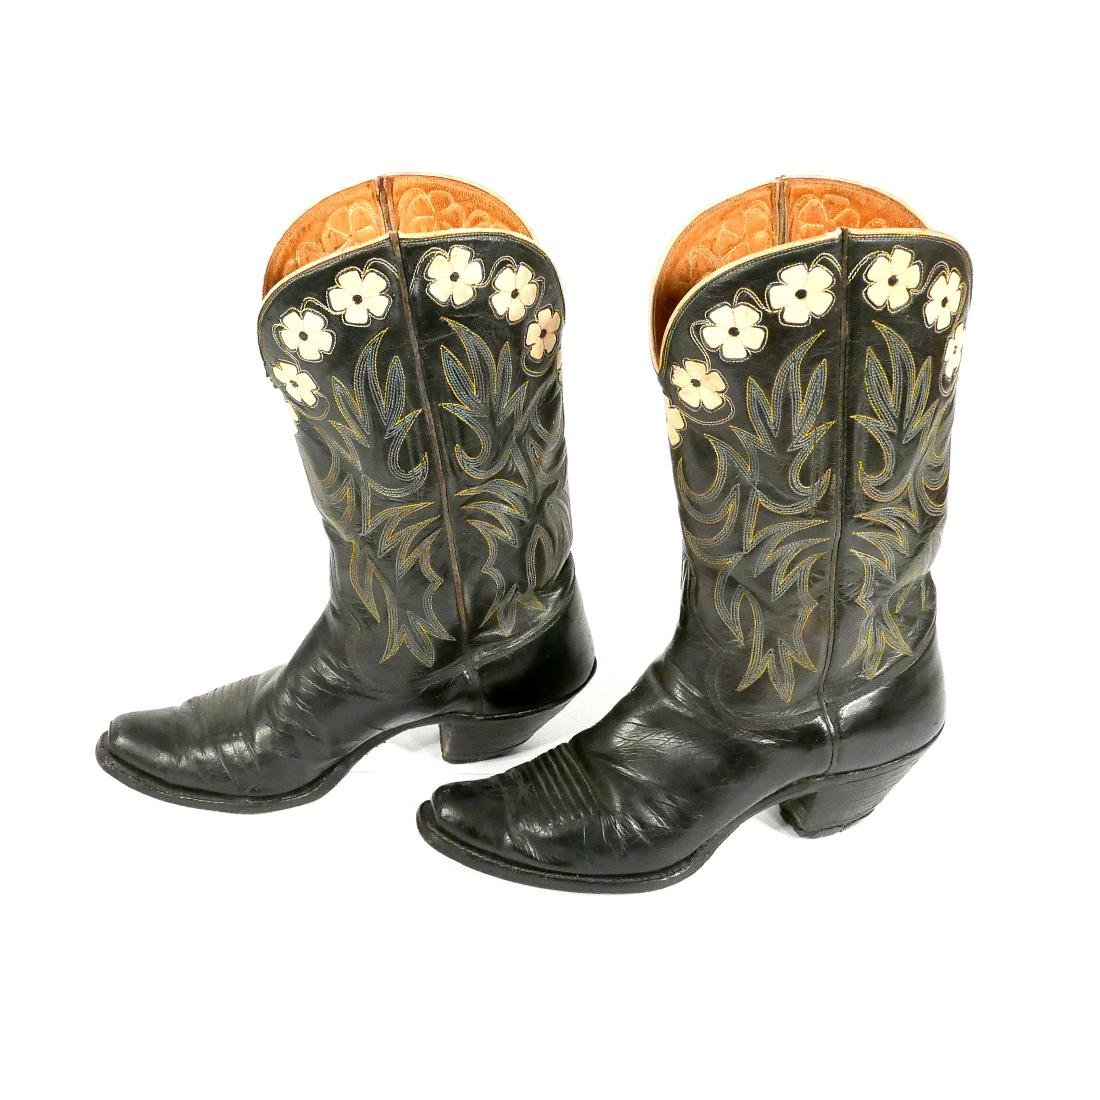 C.H. Hyer Benchmade Cowboy Boots